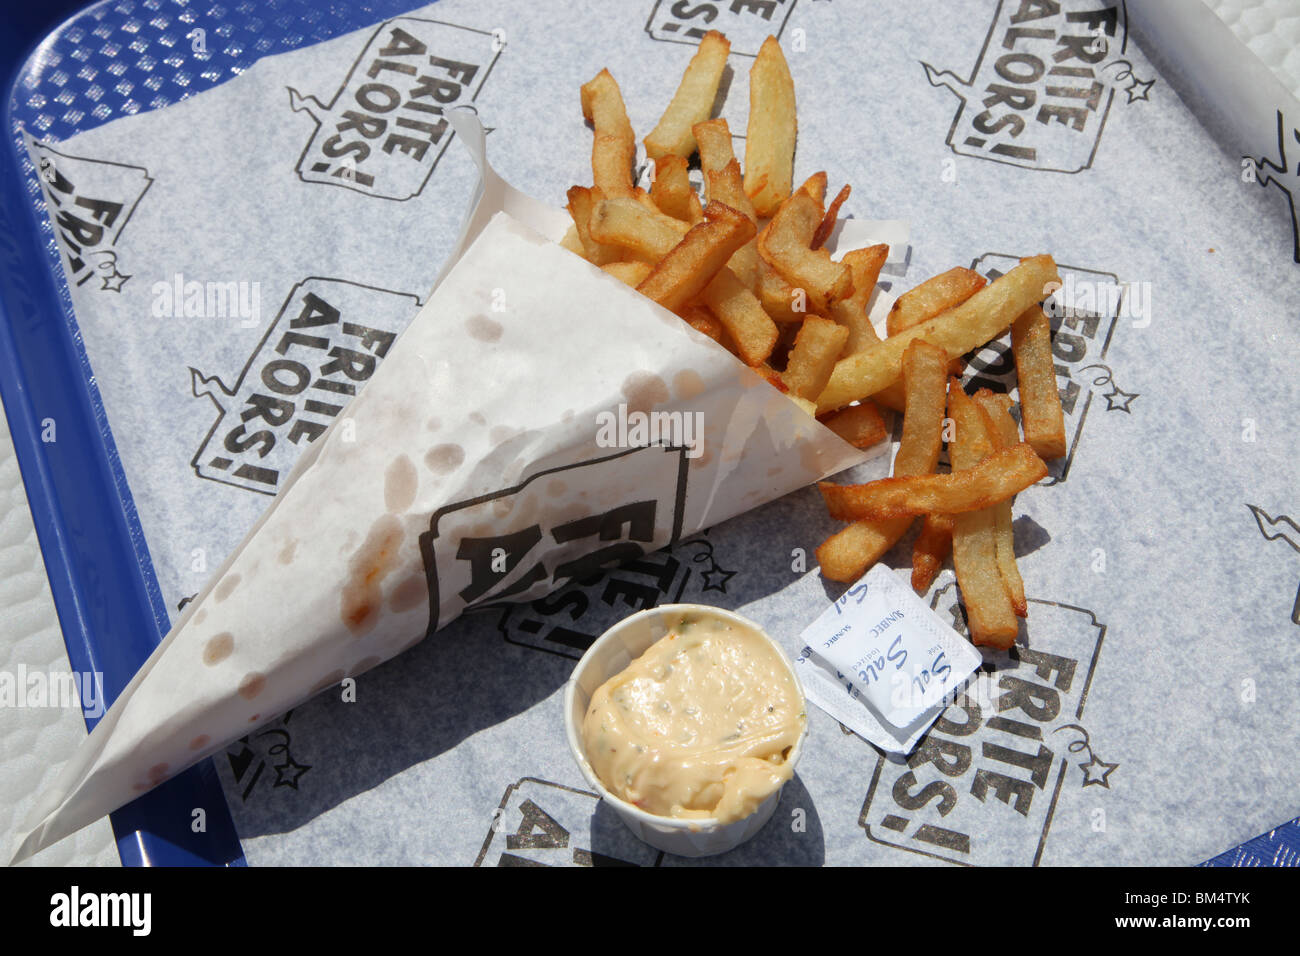 fast food French Fries - Stock Image